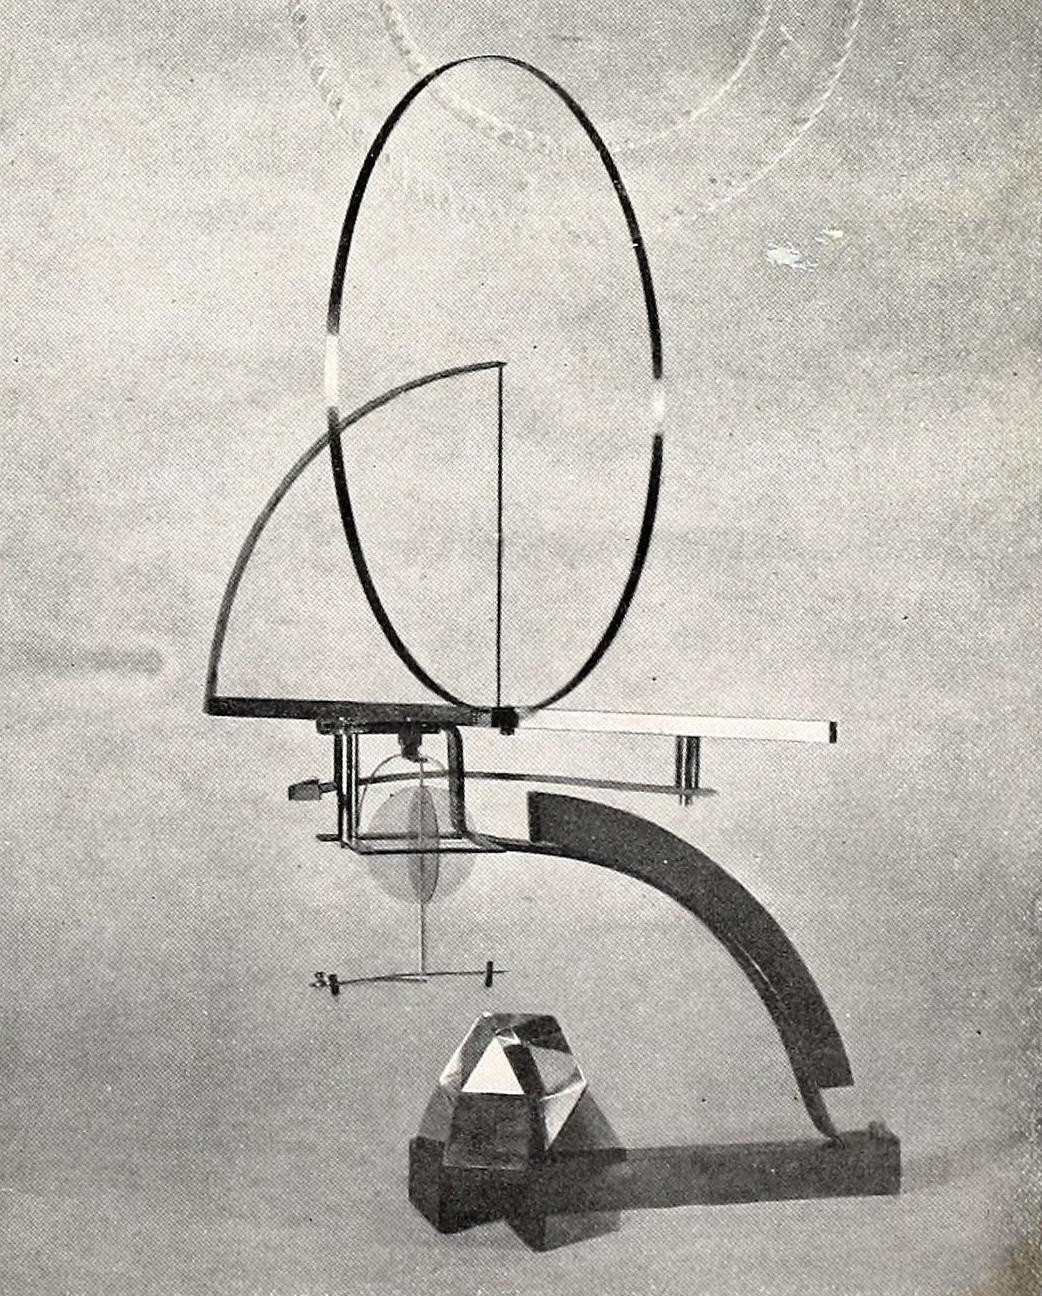 Naum Gabo, monument for the institute of physics and mathematics (1925), glass and bronze 24 inches high